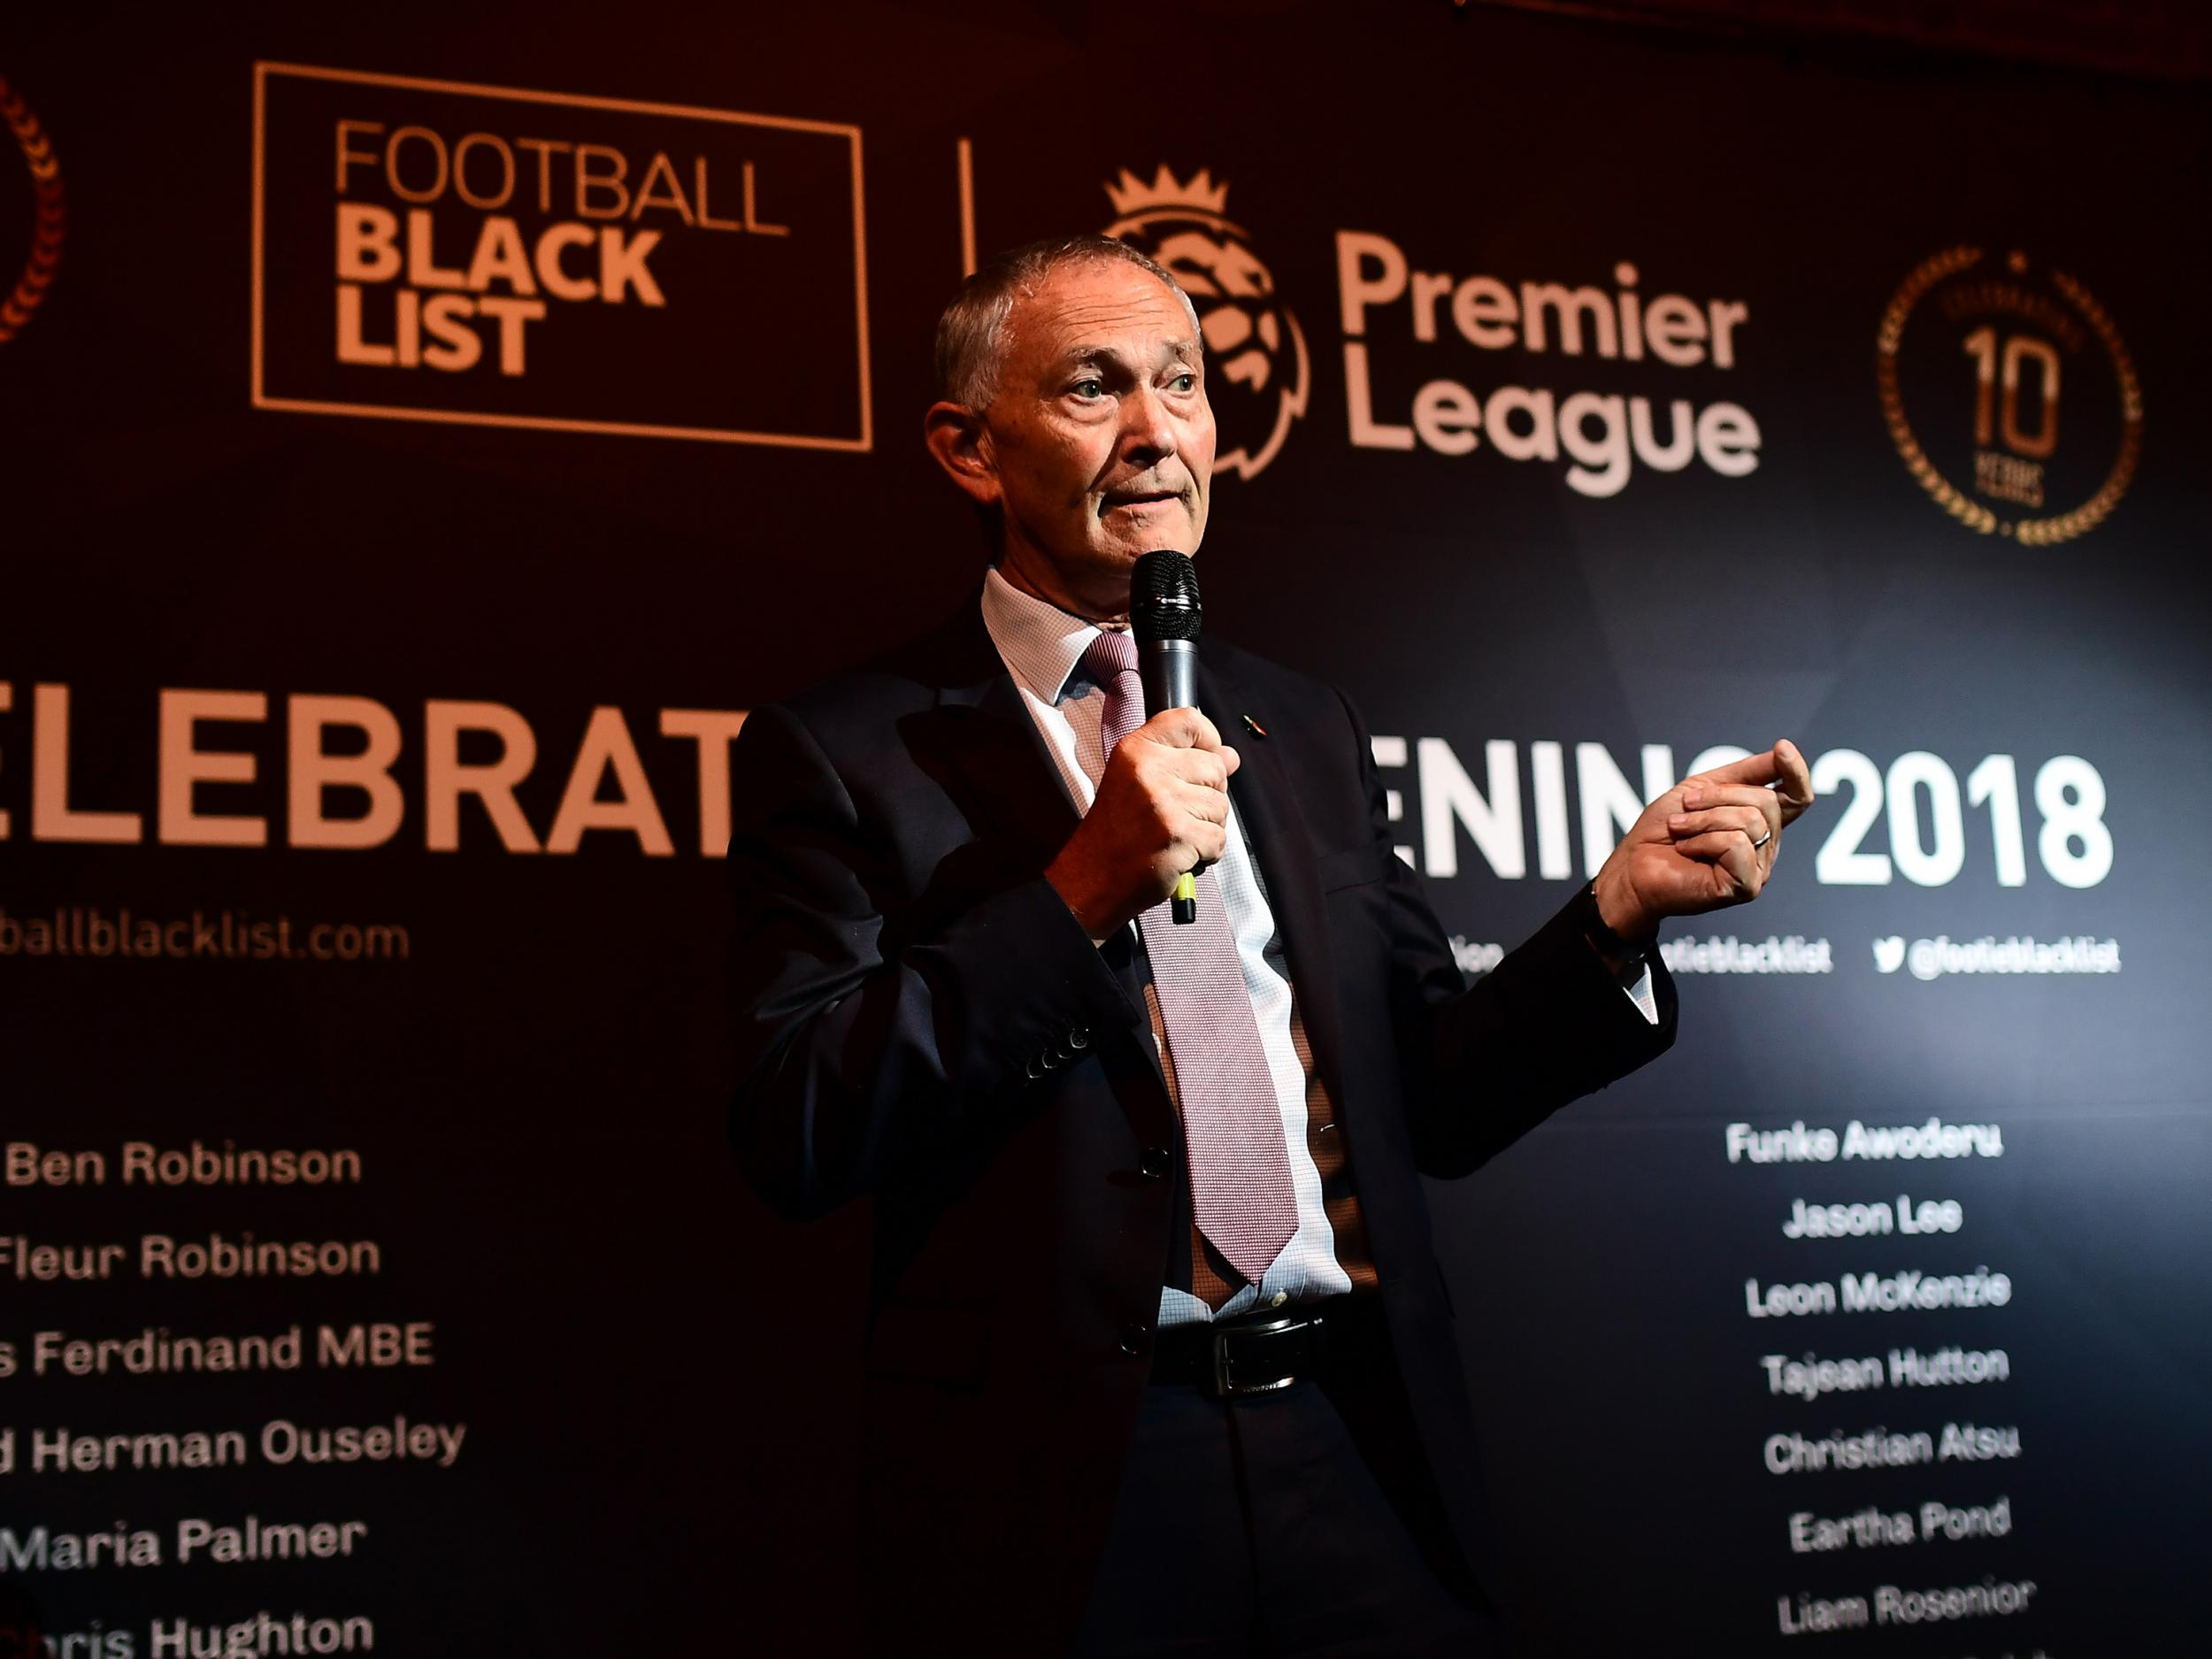 Premier League: Richard Scudamore accepts £5m departure bonus from all 20 clubs